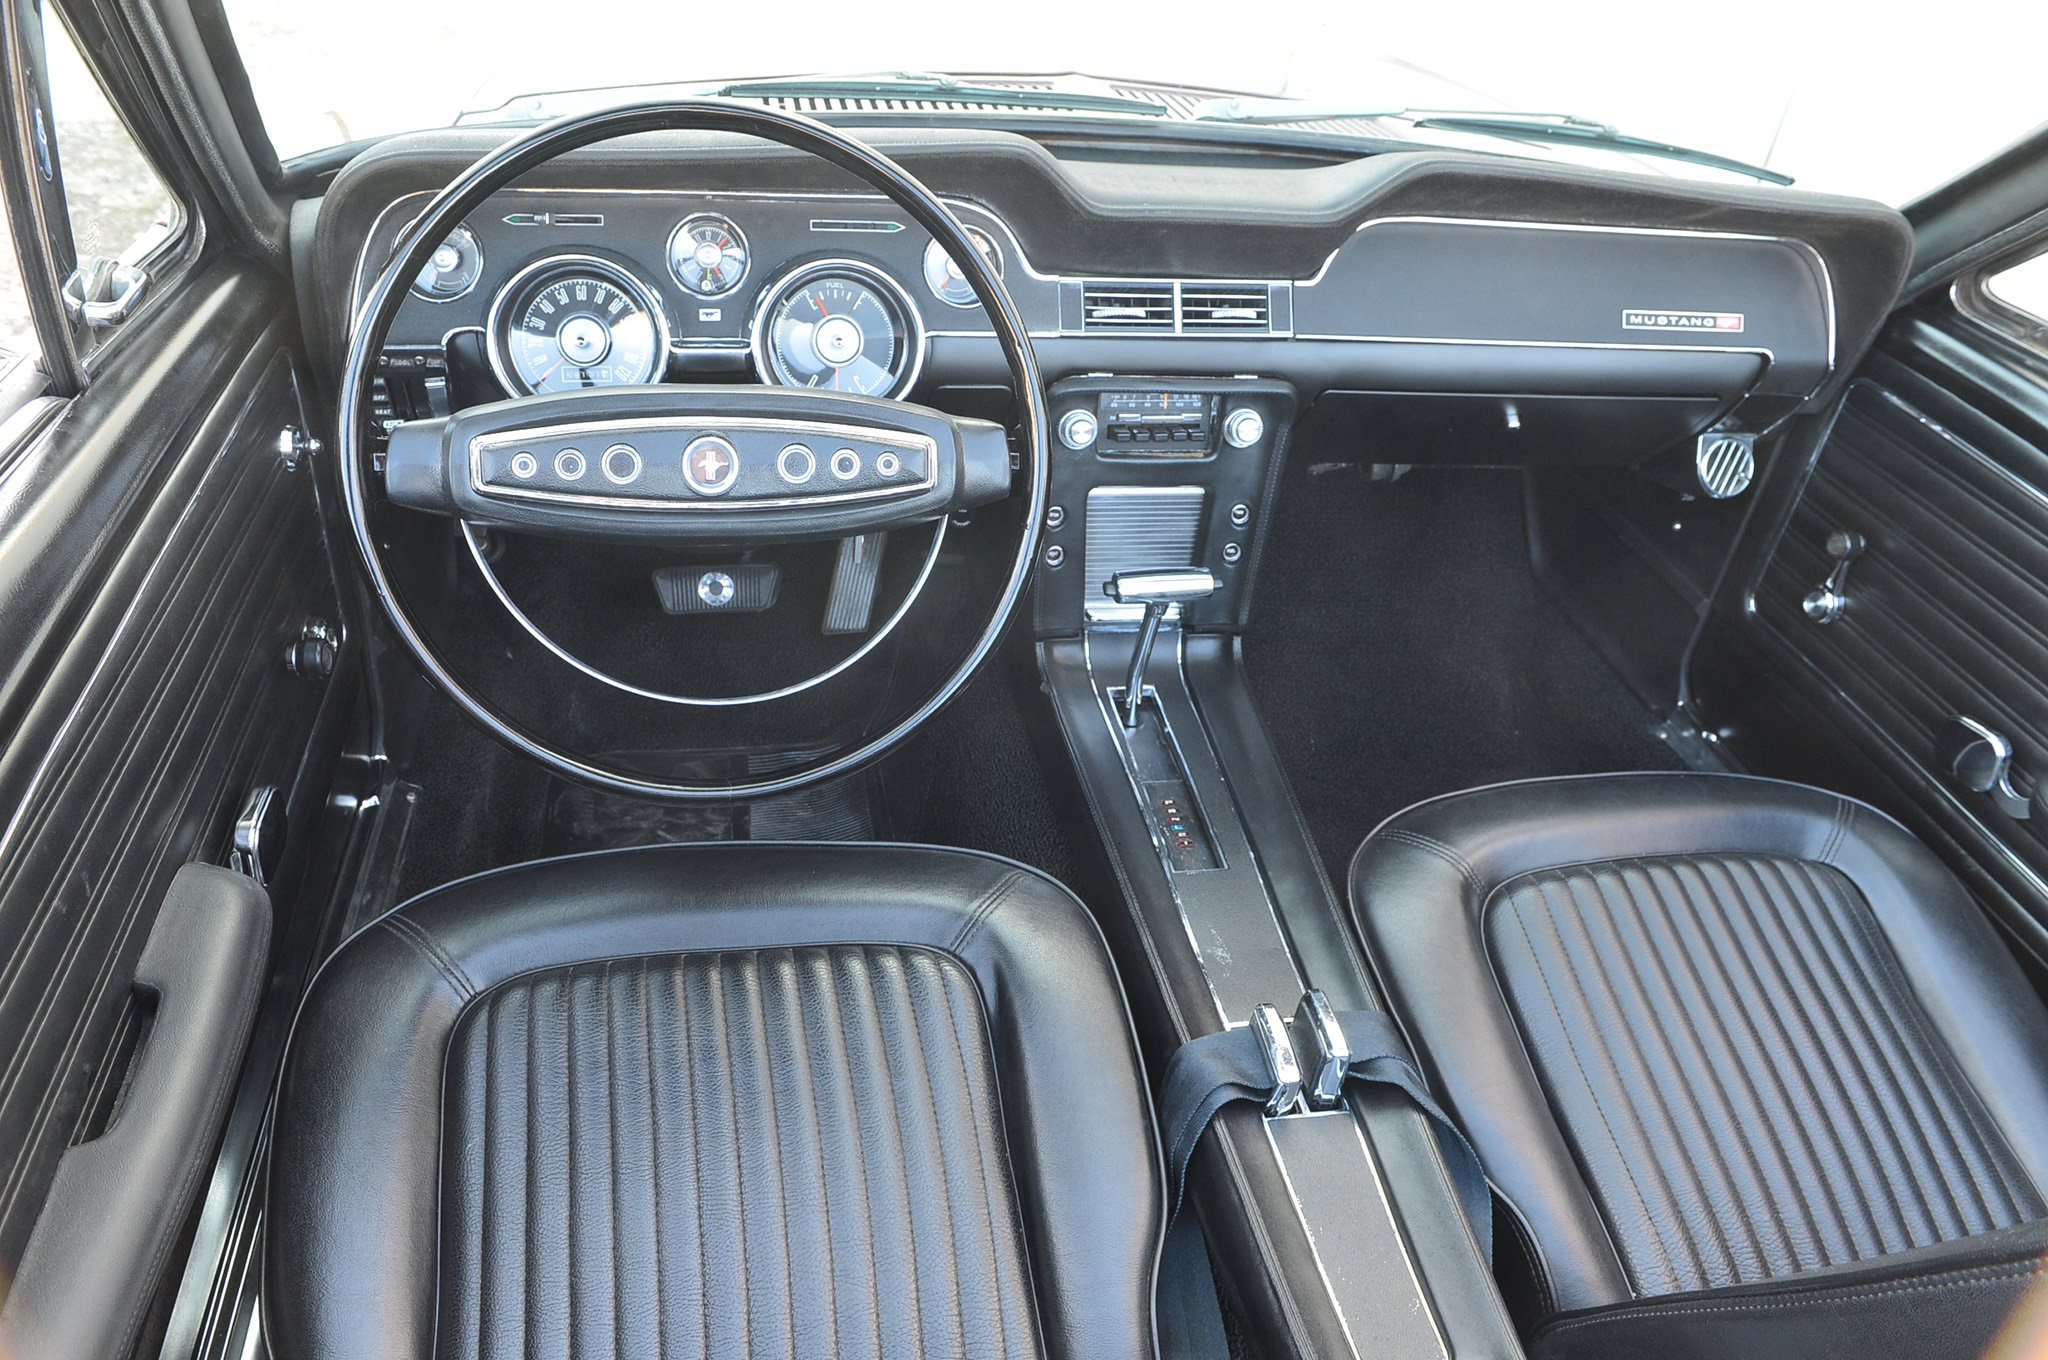 1968 Ford Mustang Convertible Project Interior After